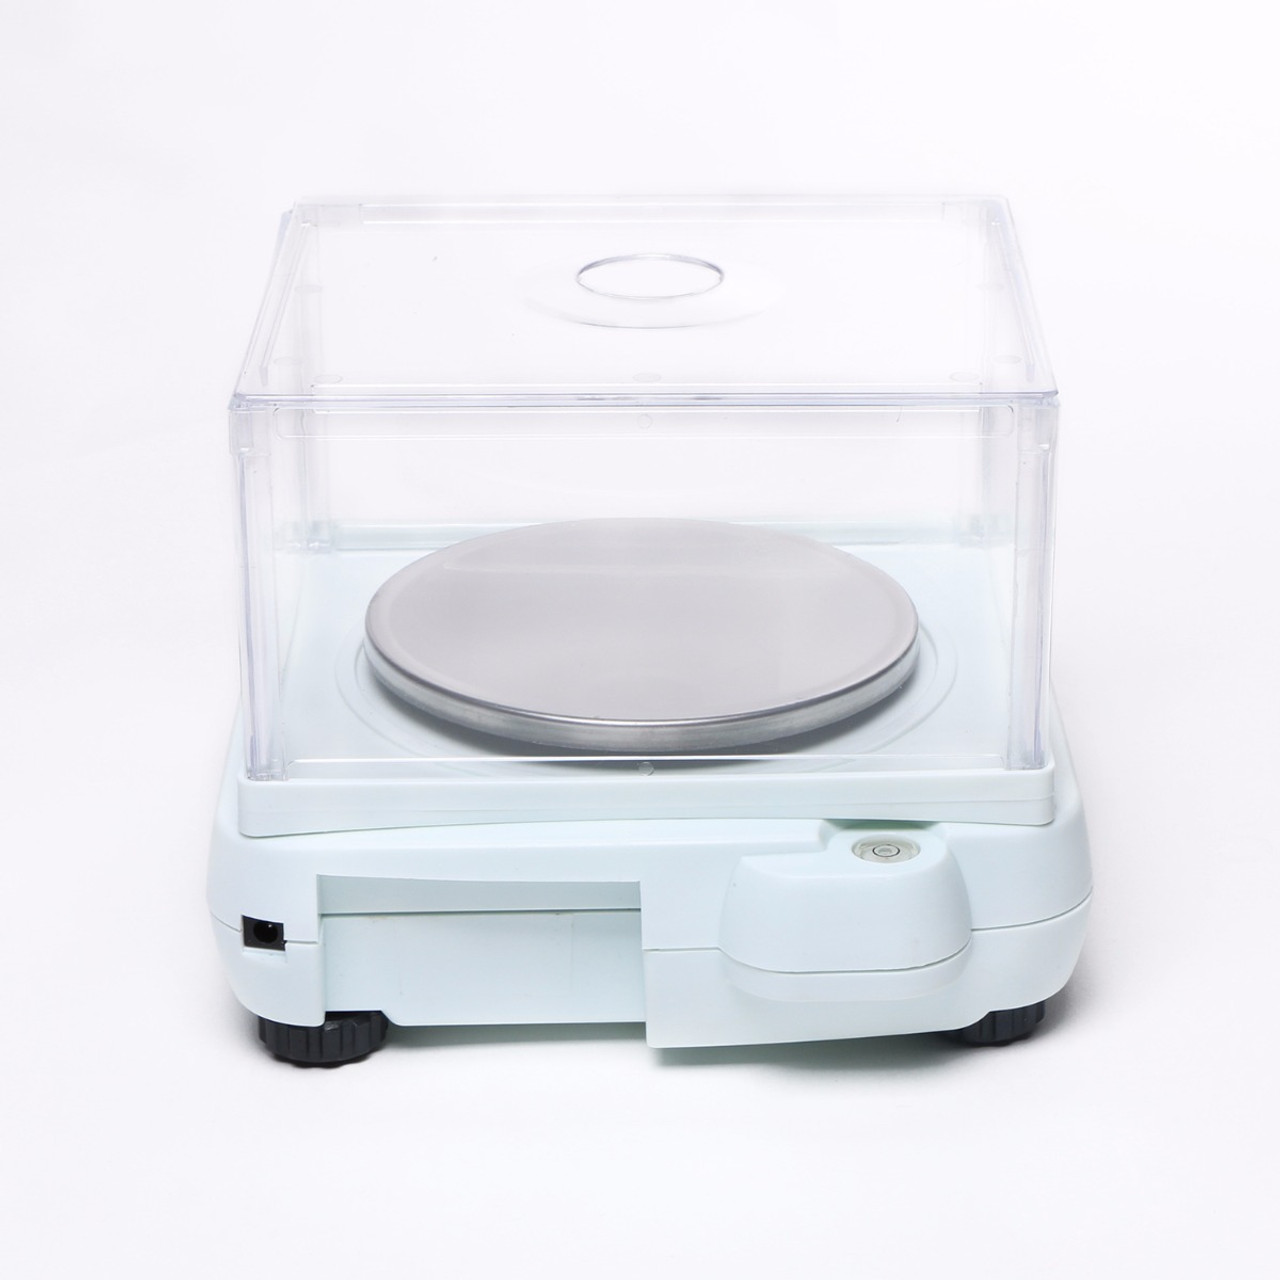 USSOLID 500g x 0.01 g Lab Scale, 0.01 g Digital Analytical Balance